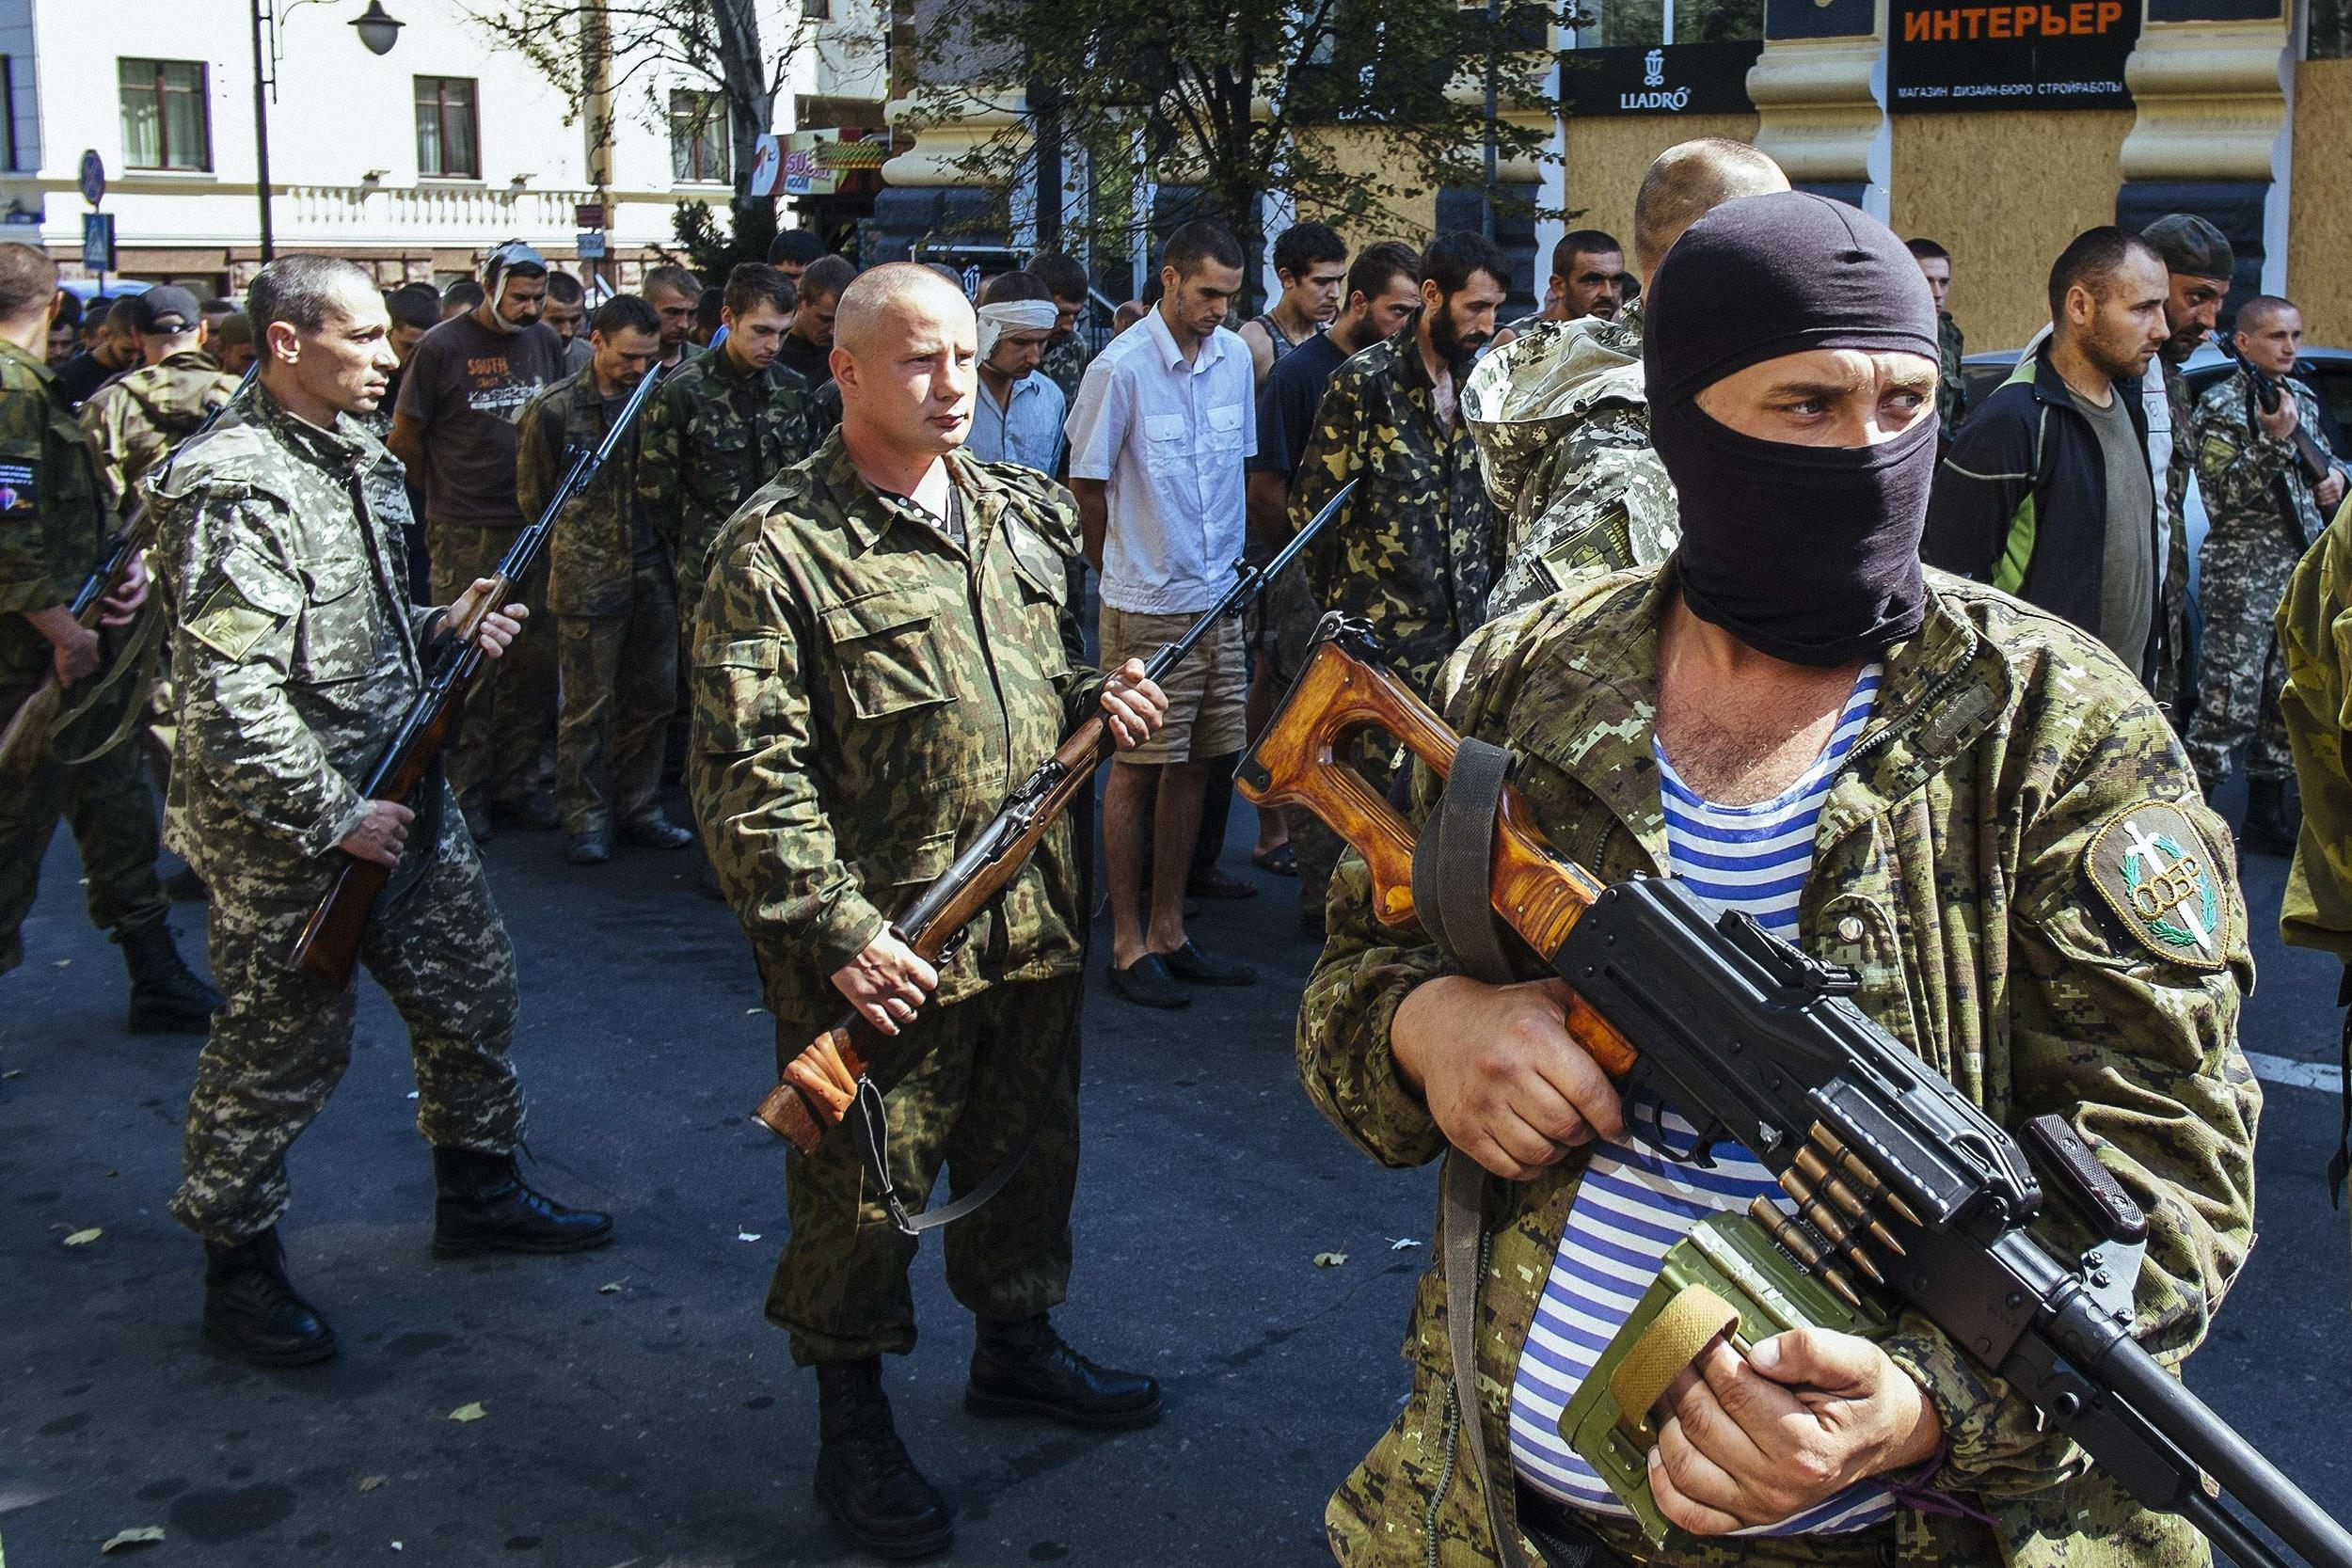 Image: Pro-Russian gunmen guard parade dozens of captured Ukrainian soldiers during a march  in mockery of the country's Independence Day celebrations  in the main separatist stronghold Donetsk